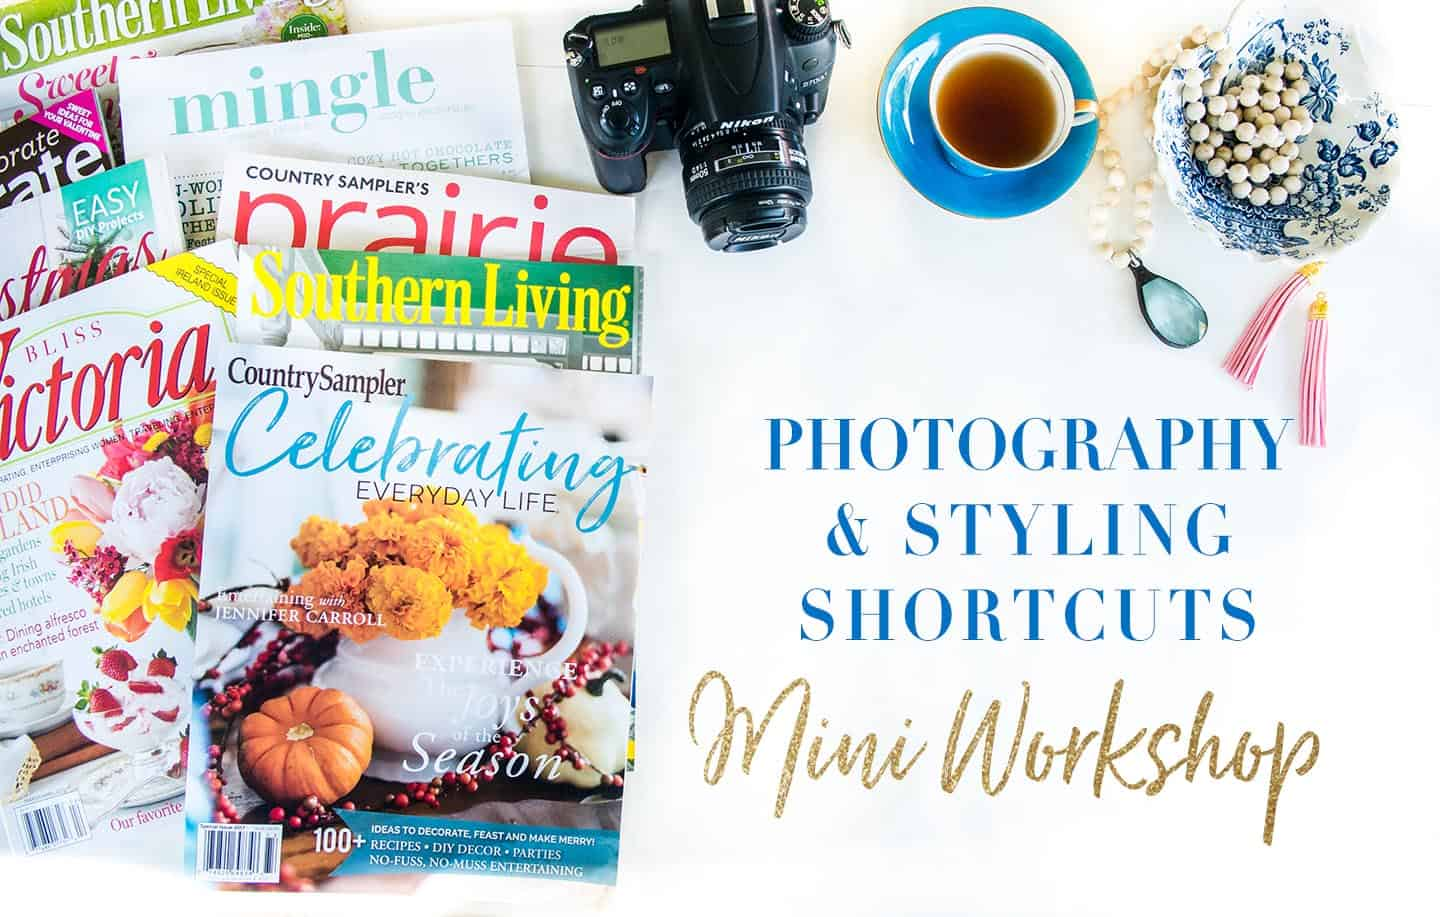 Want Pro Secrets for How to take Magazine Worthy photos? Sign up for my FREE Photography & Styling Shortcuts Mini Workshop available for a limited time!!